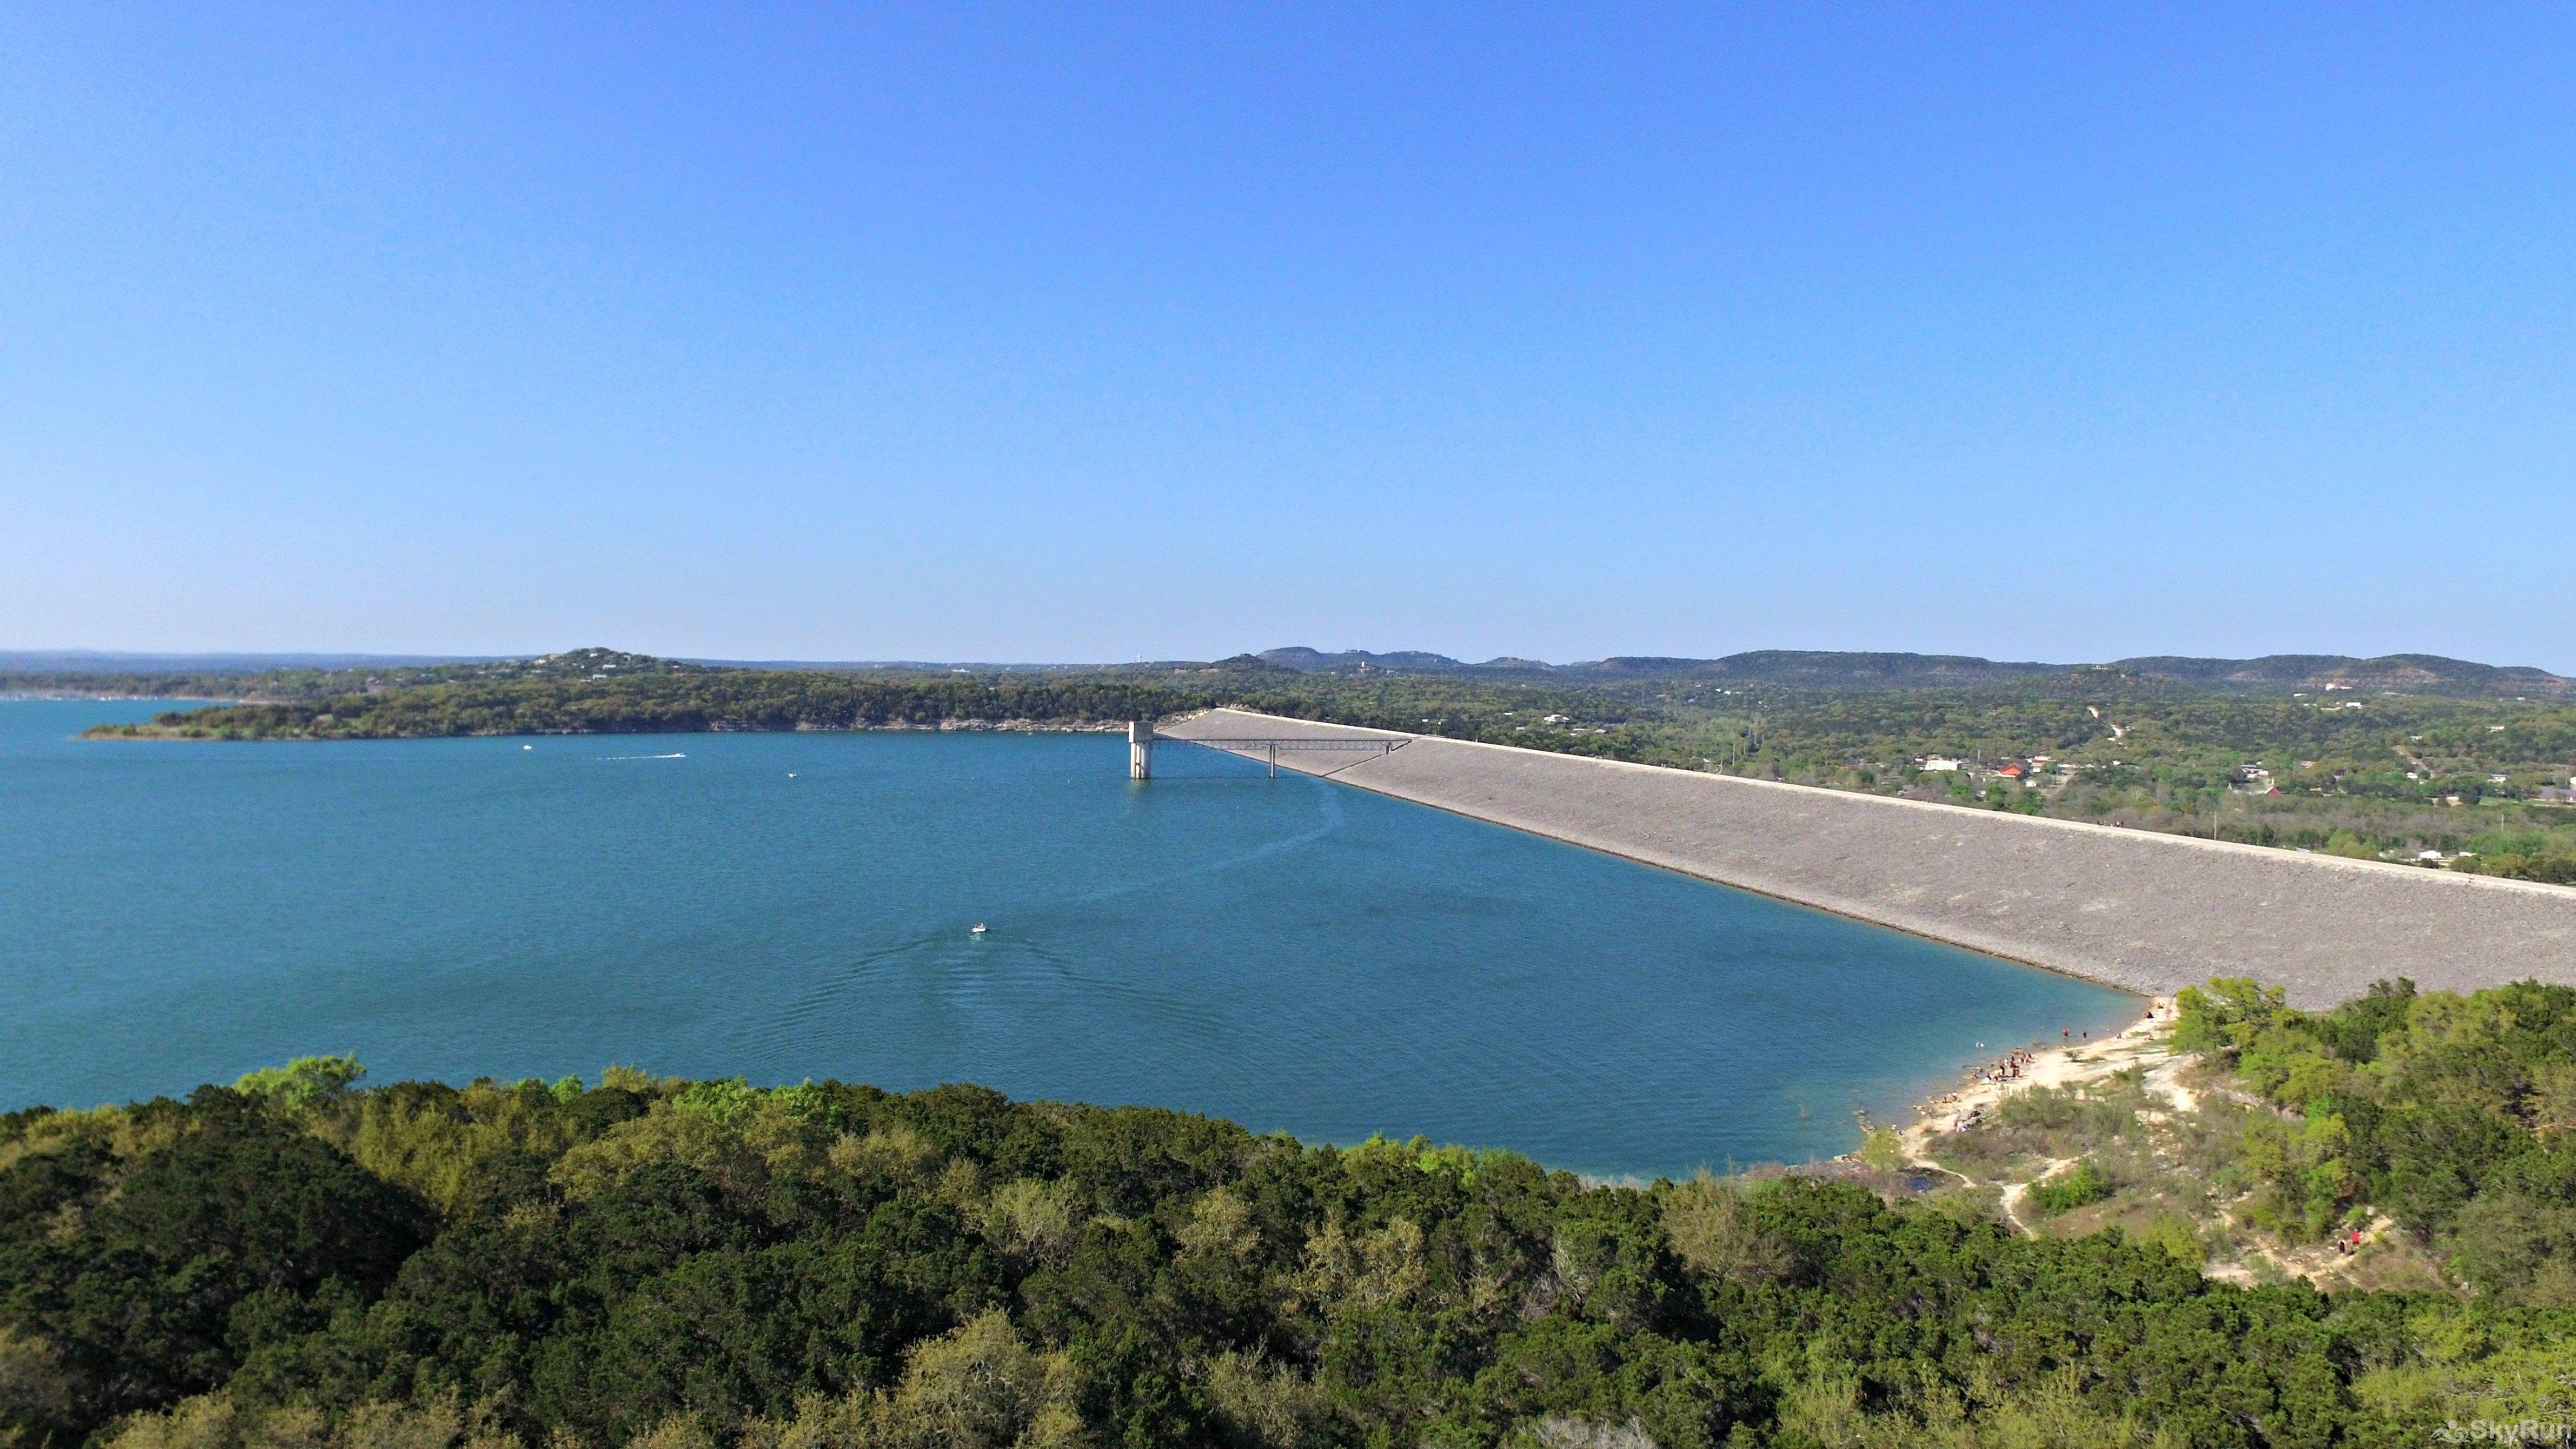 LUCKY GOAT HOUSE Beautiful Canyon Lake, Only 2 Miles from The Lucky Goat House